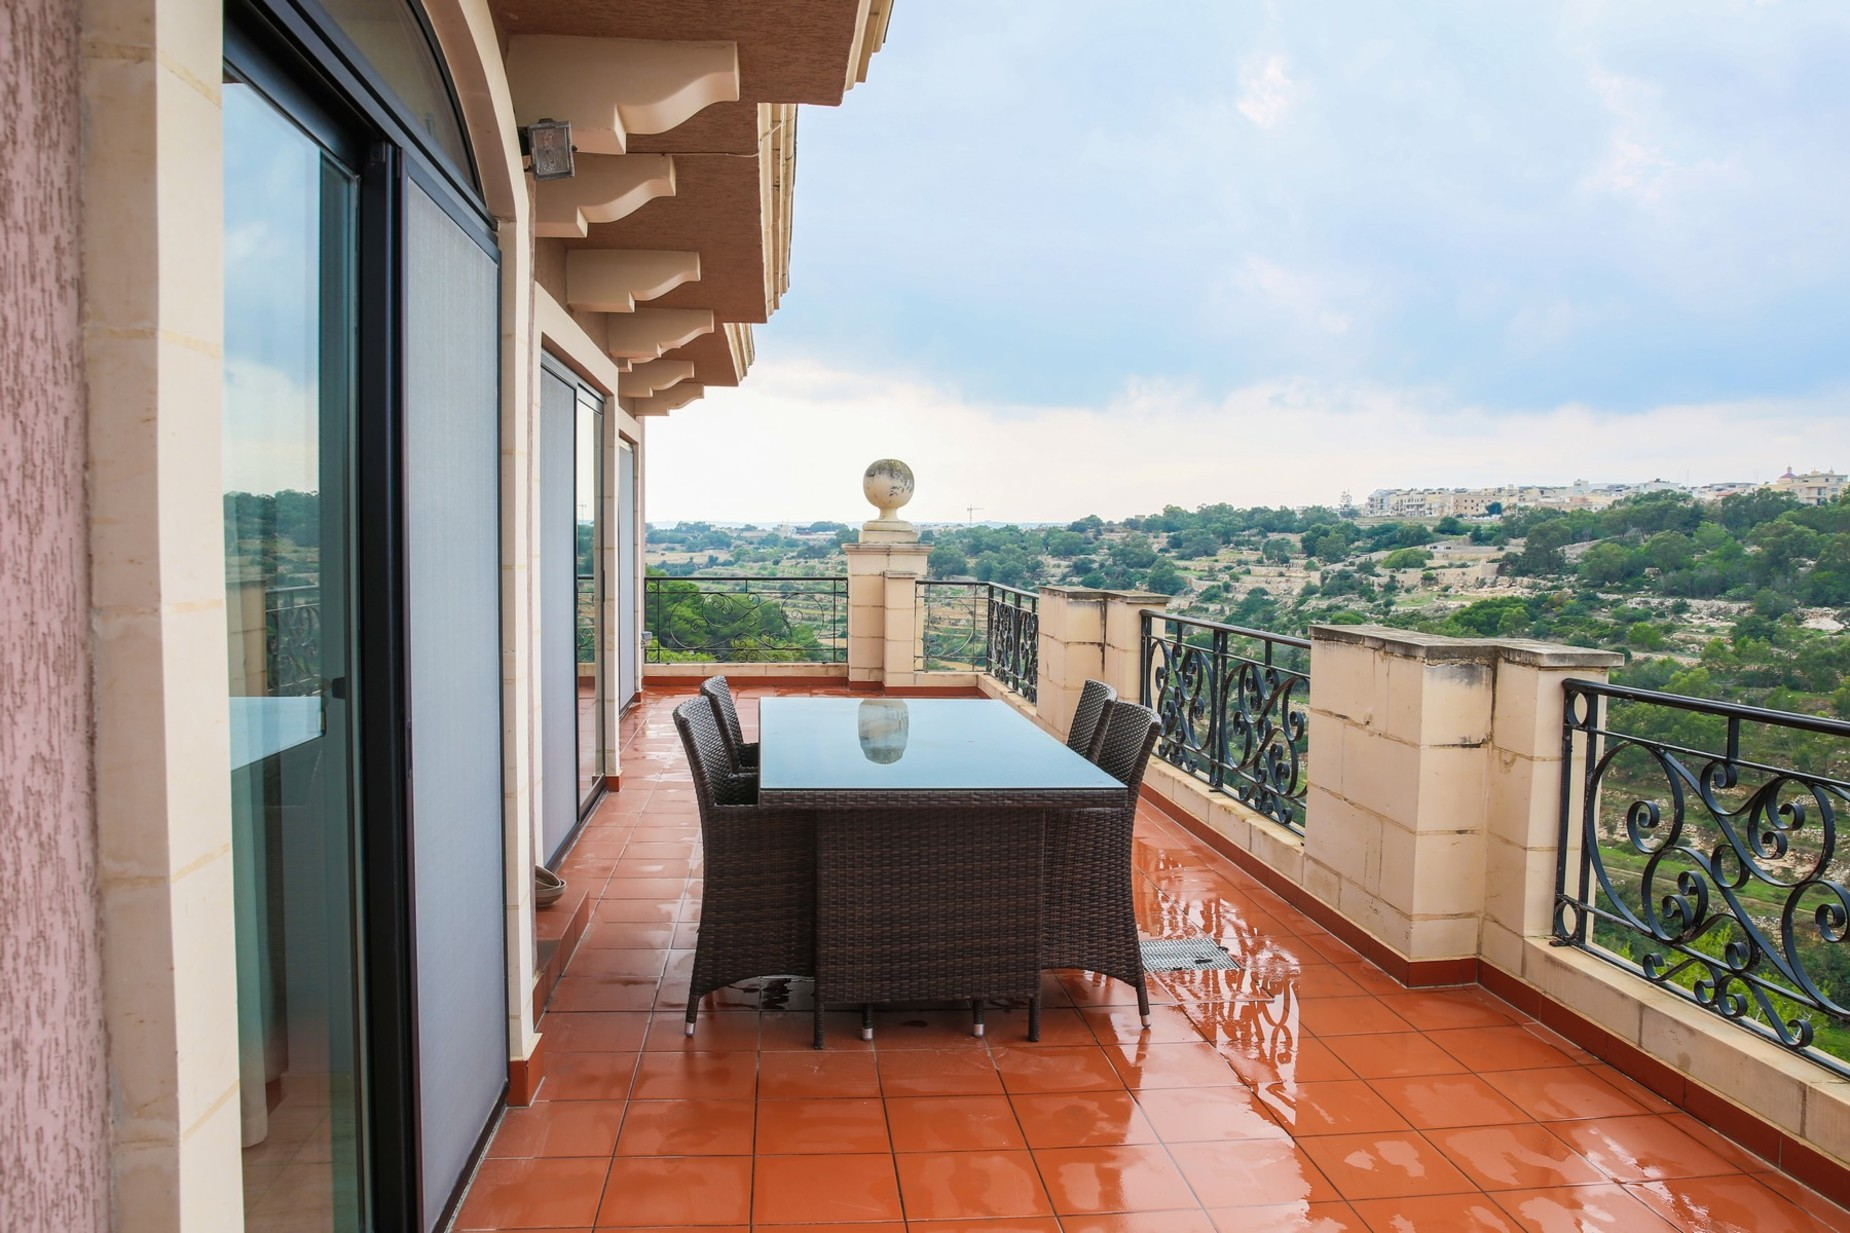 2 bed Apartment For Sale in Madliena, Madliena - thumb 2